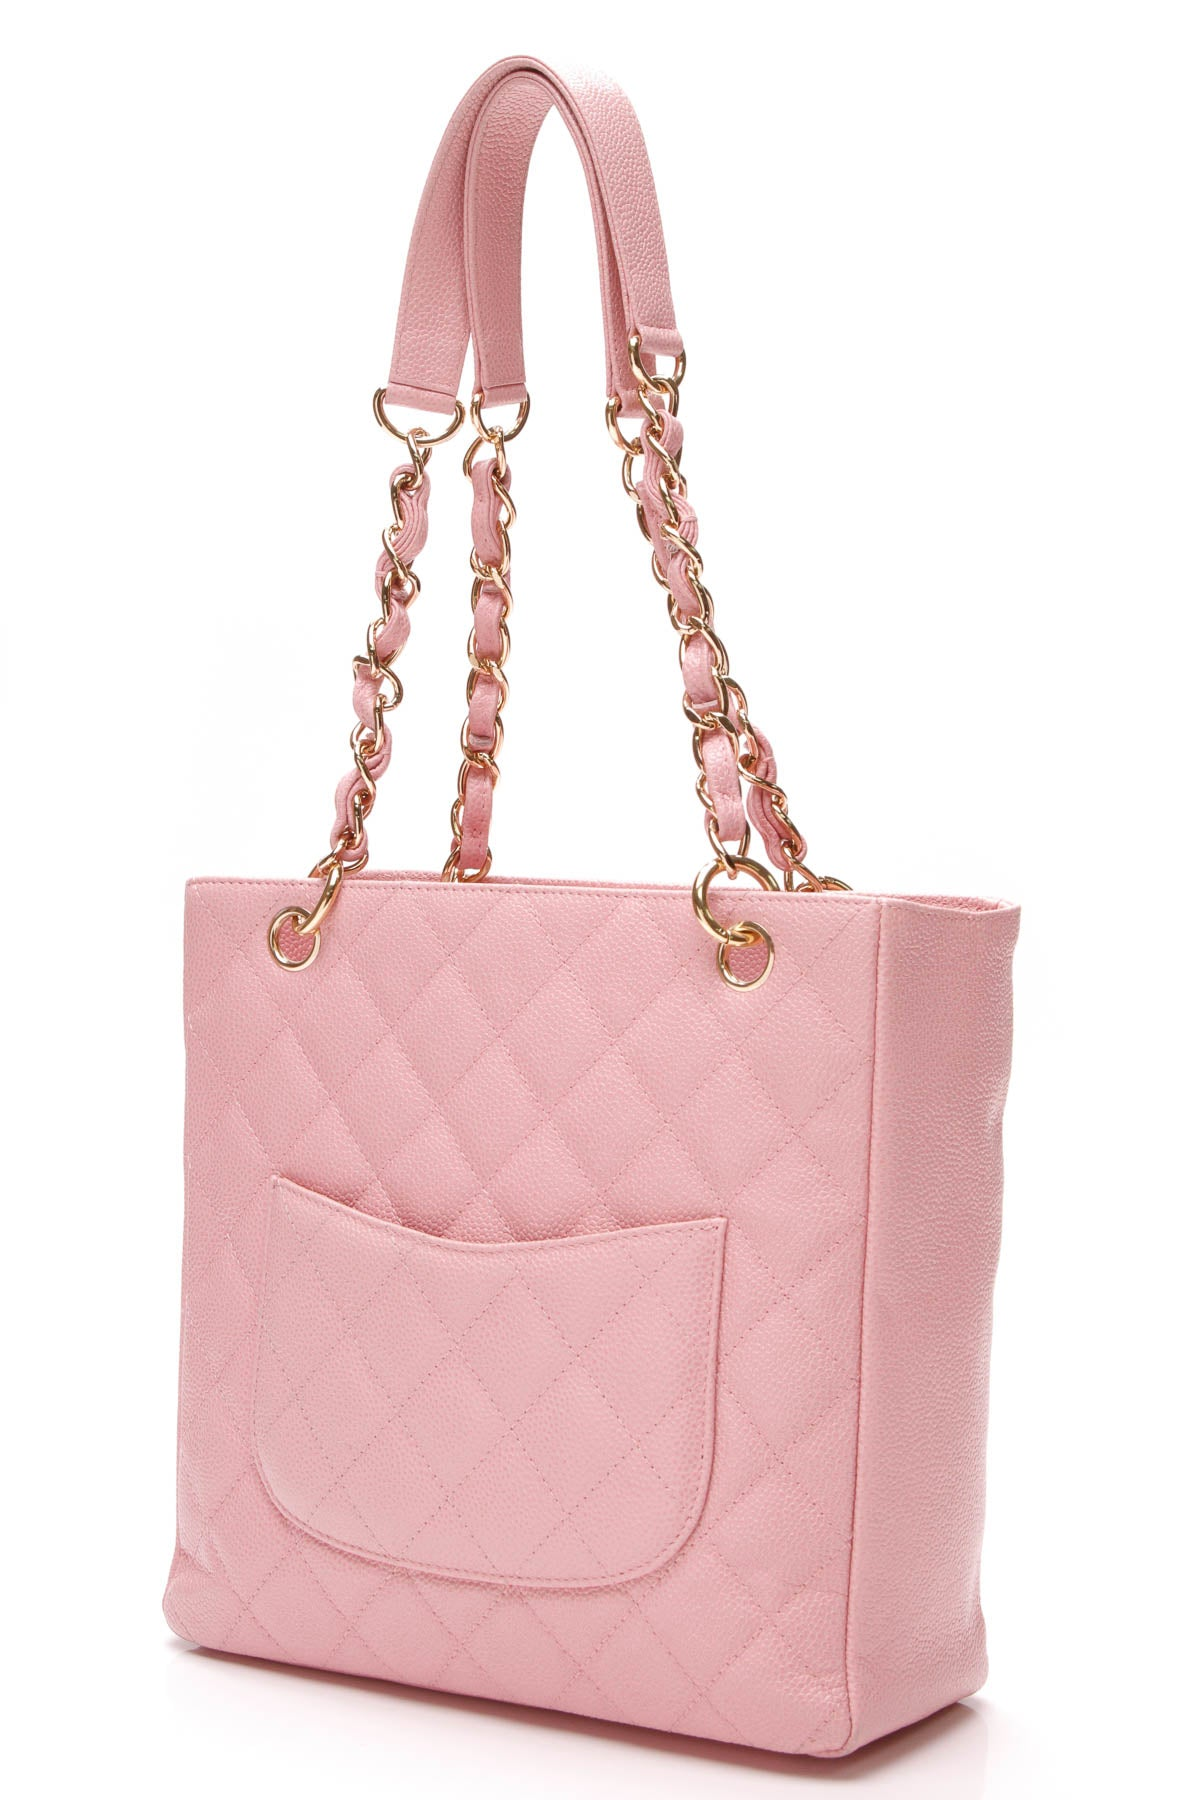 19a8ae28195c Chanel PST Petite Shopping Tote Bag - Pink Caviar – Couture USA